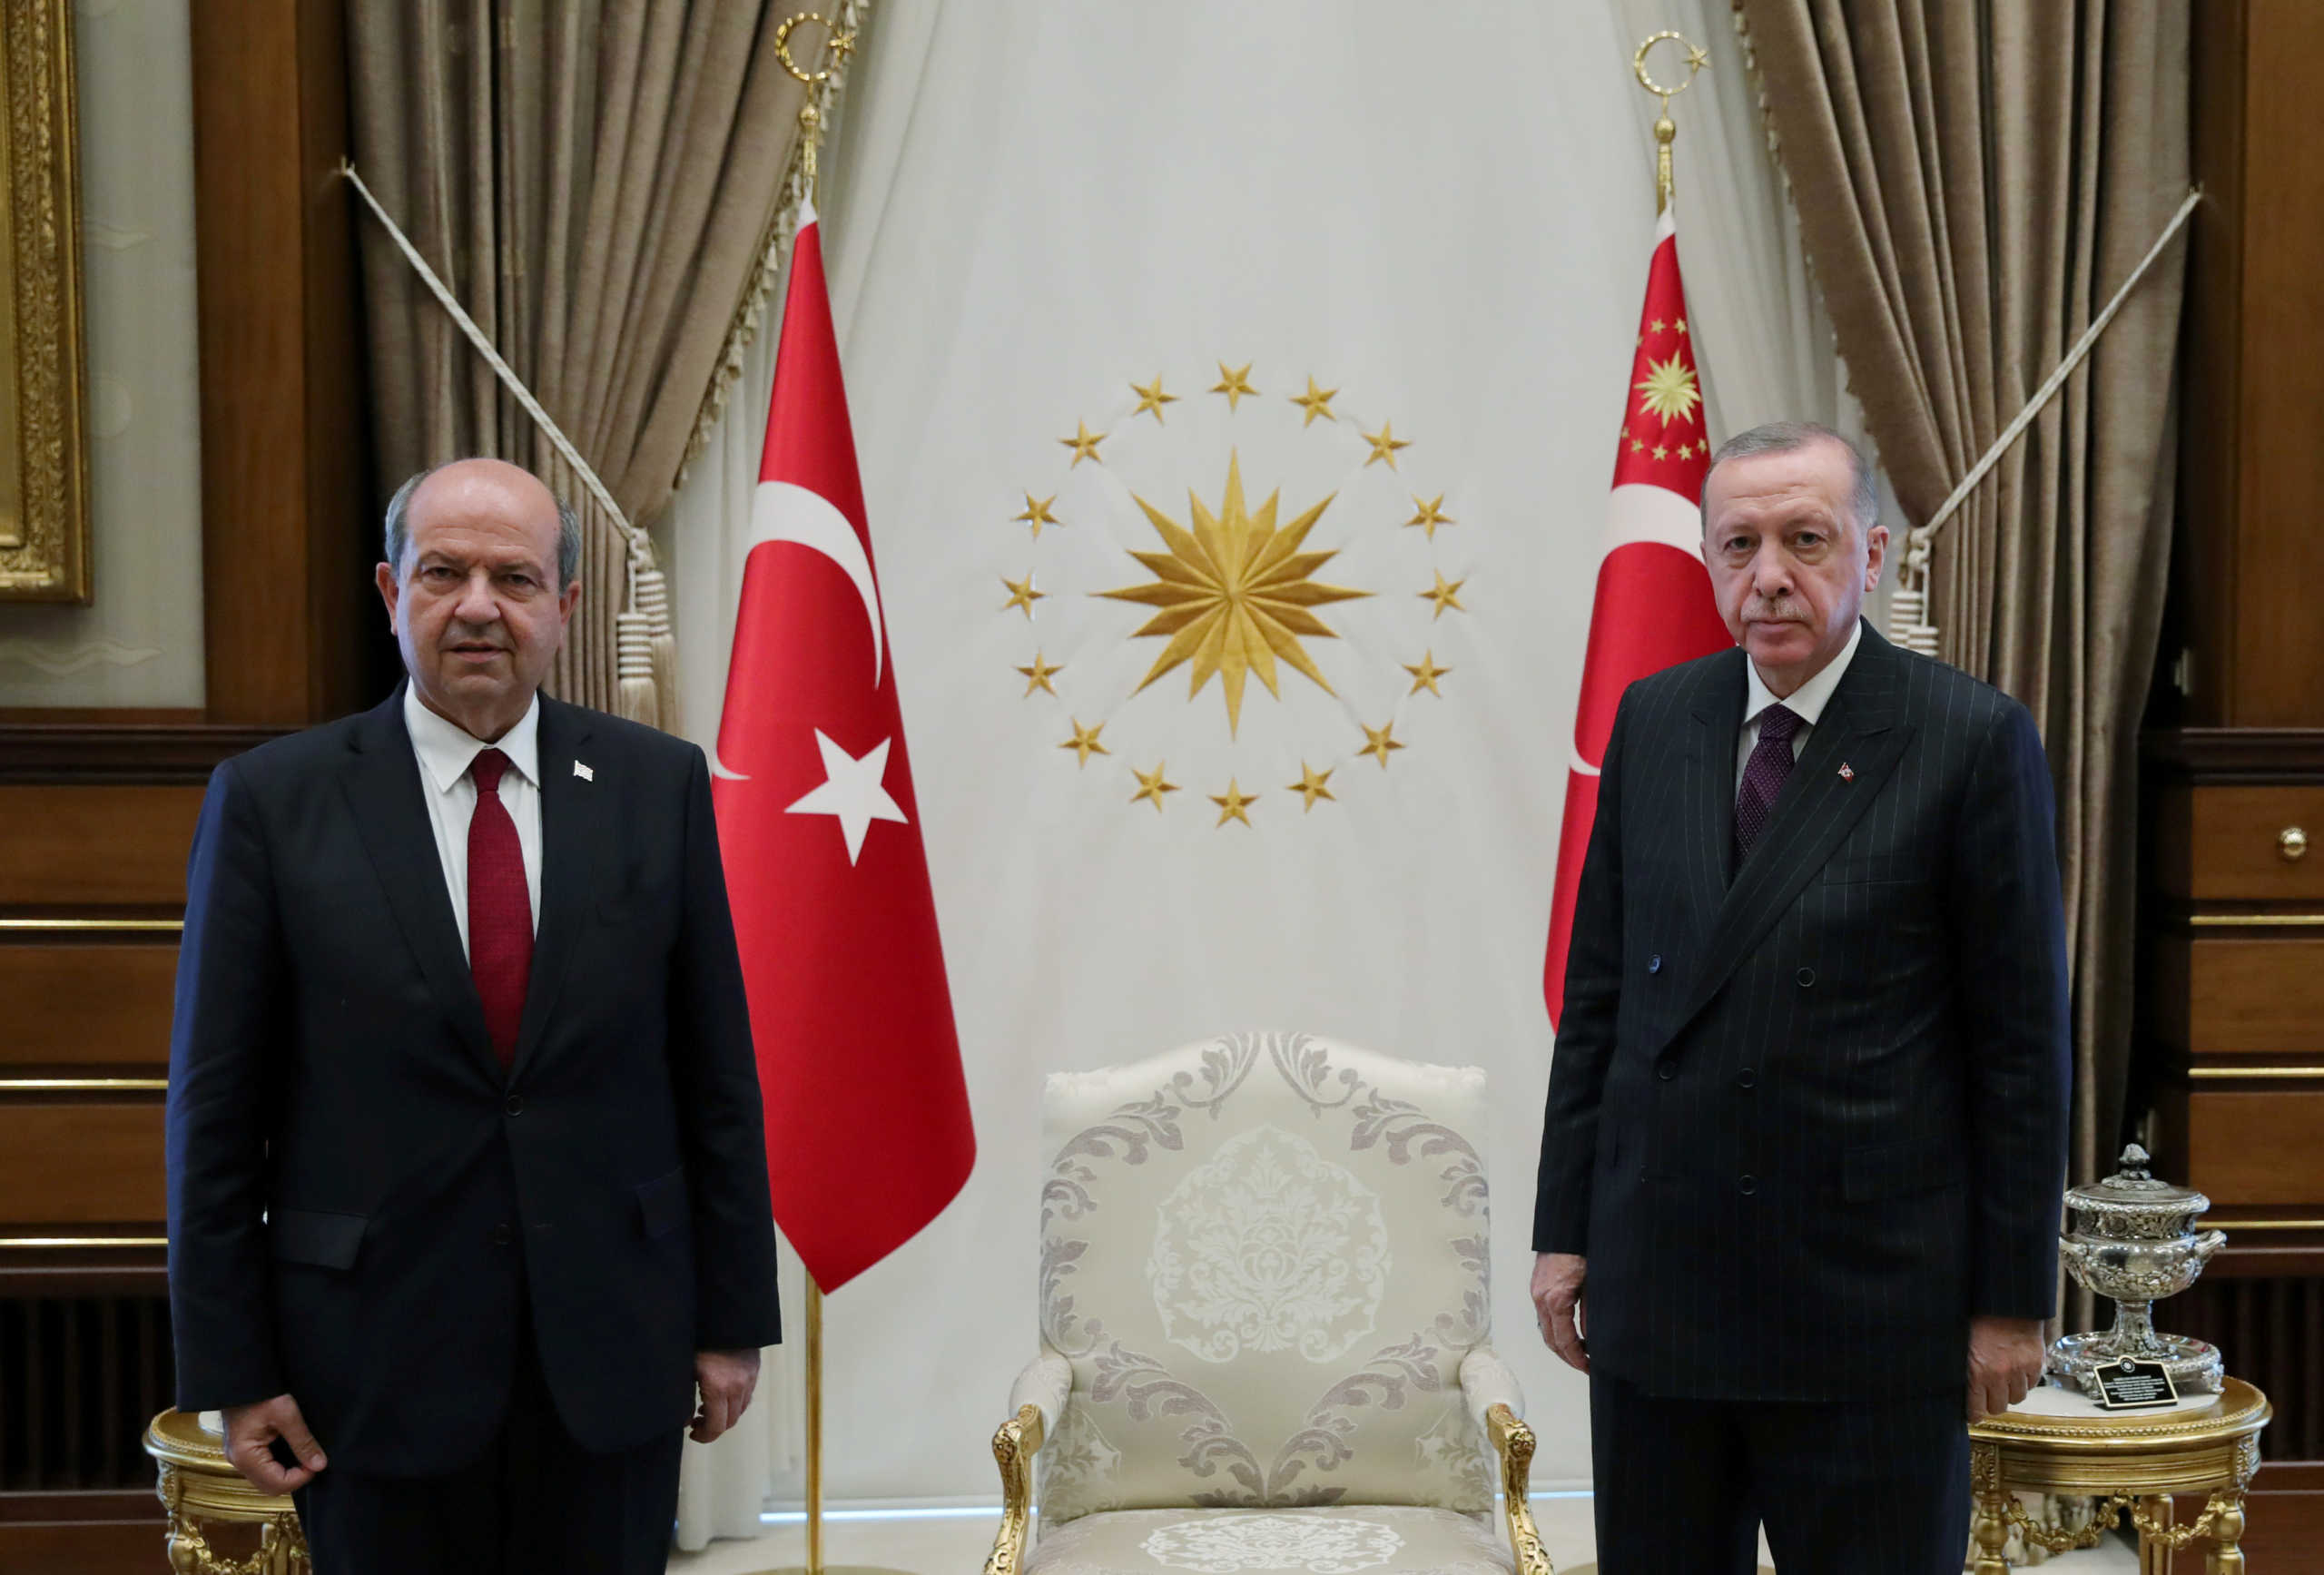 FILE PHOTO: Turkish President Tayyip Erdogan meets with Ersin Tatar, prime minister of the breakaway state of Northern Cyprus, in Ankara, Turkey October 6, 2020. Presidential Press Office/Handout via REUTERS ATTENTION EDITORS - THIS PICTURE WAS PROVIDED BY A THIRD PARTY. NO RESALES. NO ARCHIVE./File Photo